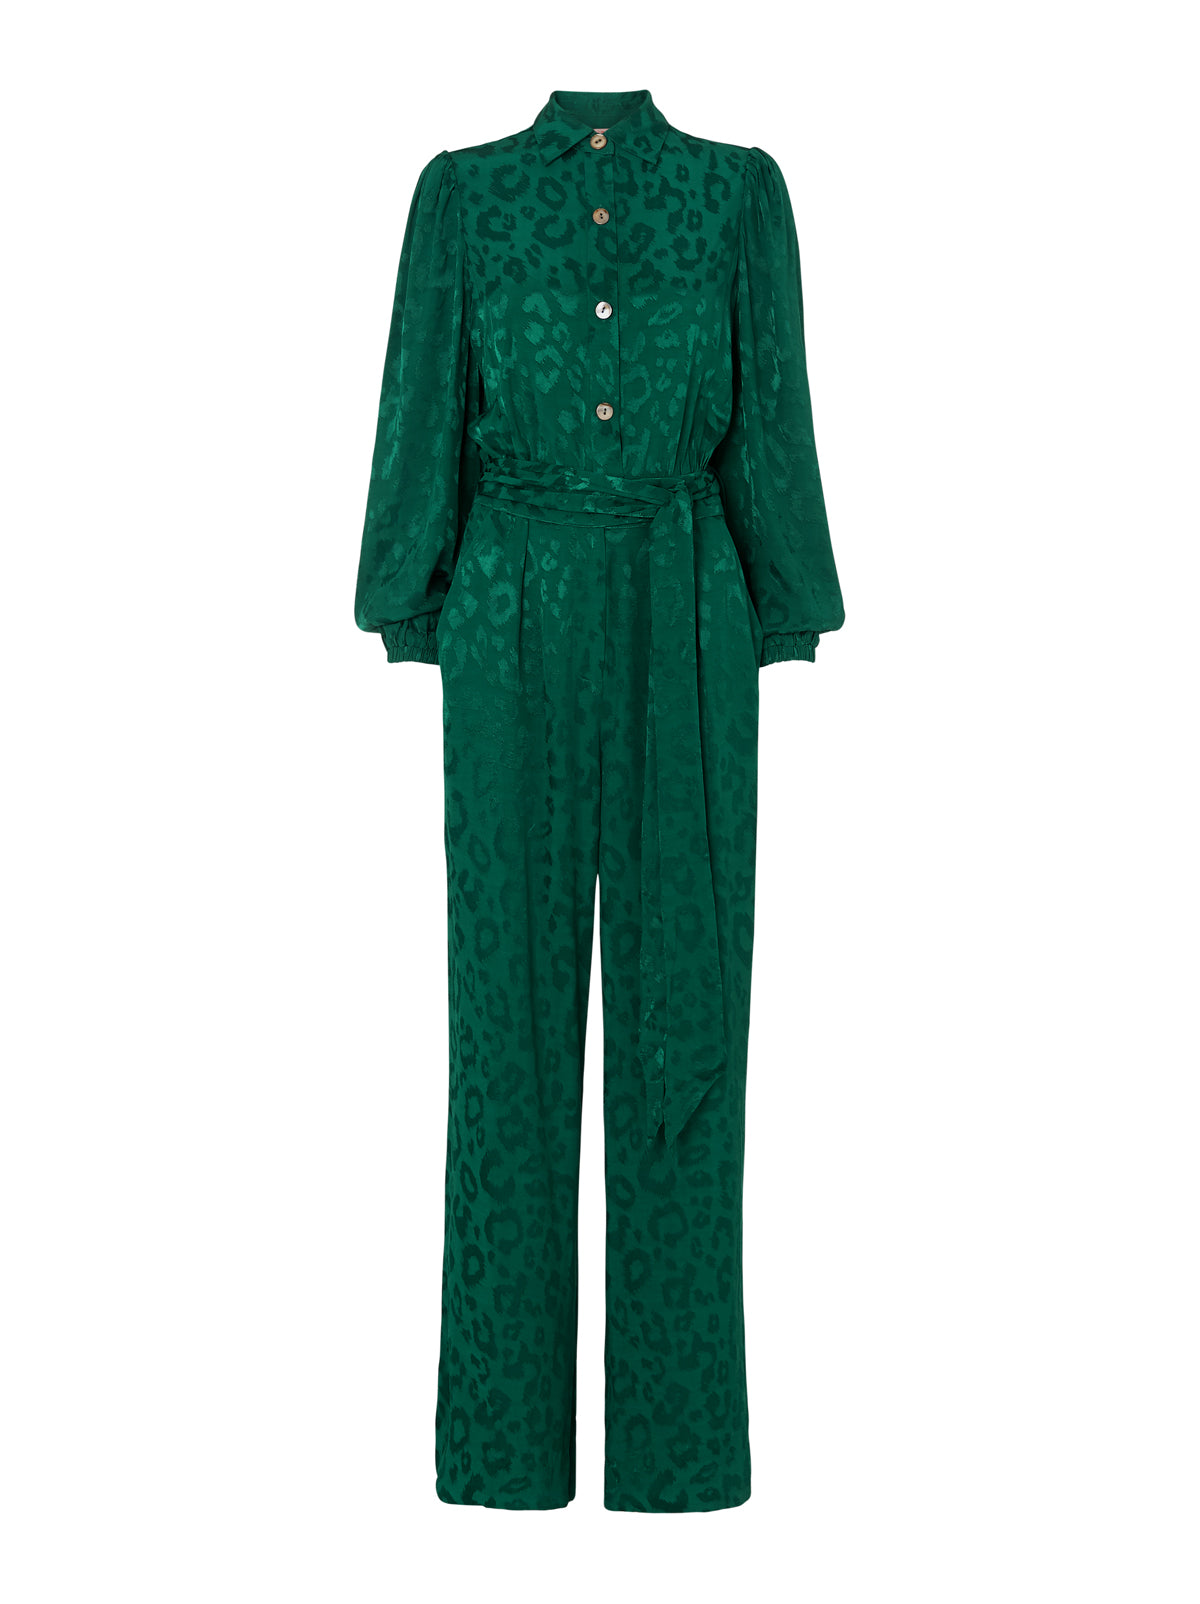 Allegra Animal Print Volume Sleeve Jumpsuit by KITRI Studio